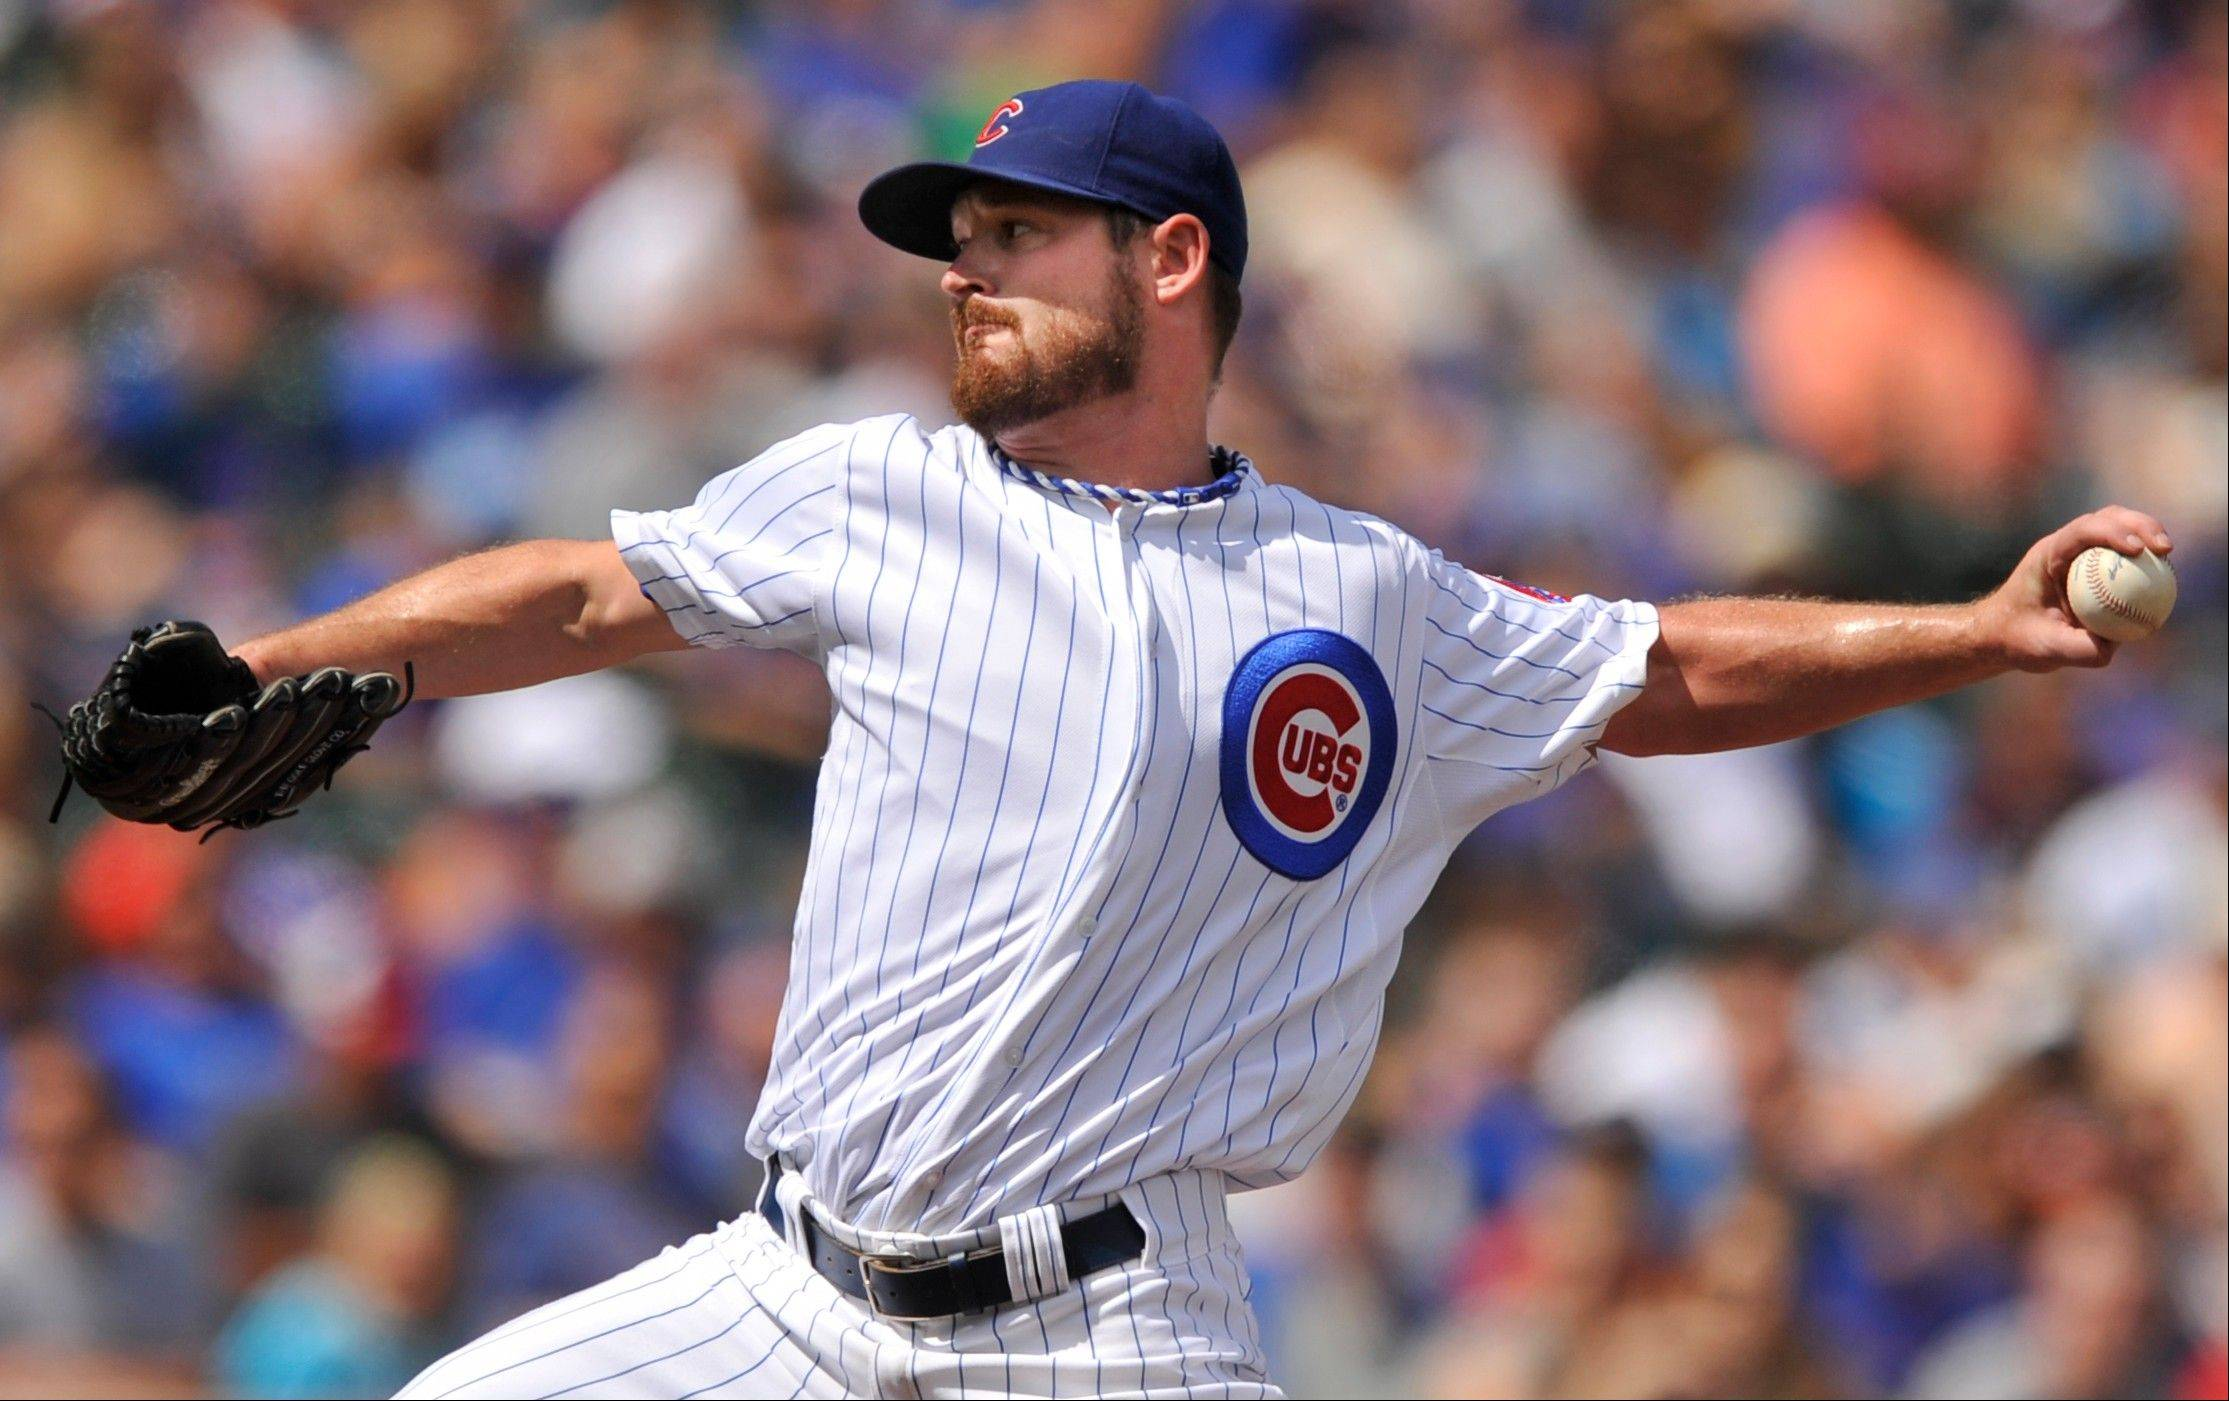 Cubs starter Travis Wood delivers a pitch during the first inning of a baseball game against the Miami Marlins in Chicago, Monday, Sept. 2, 2013, at Wrigley Field.